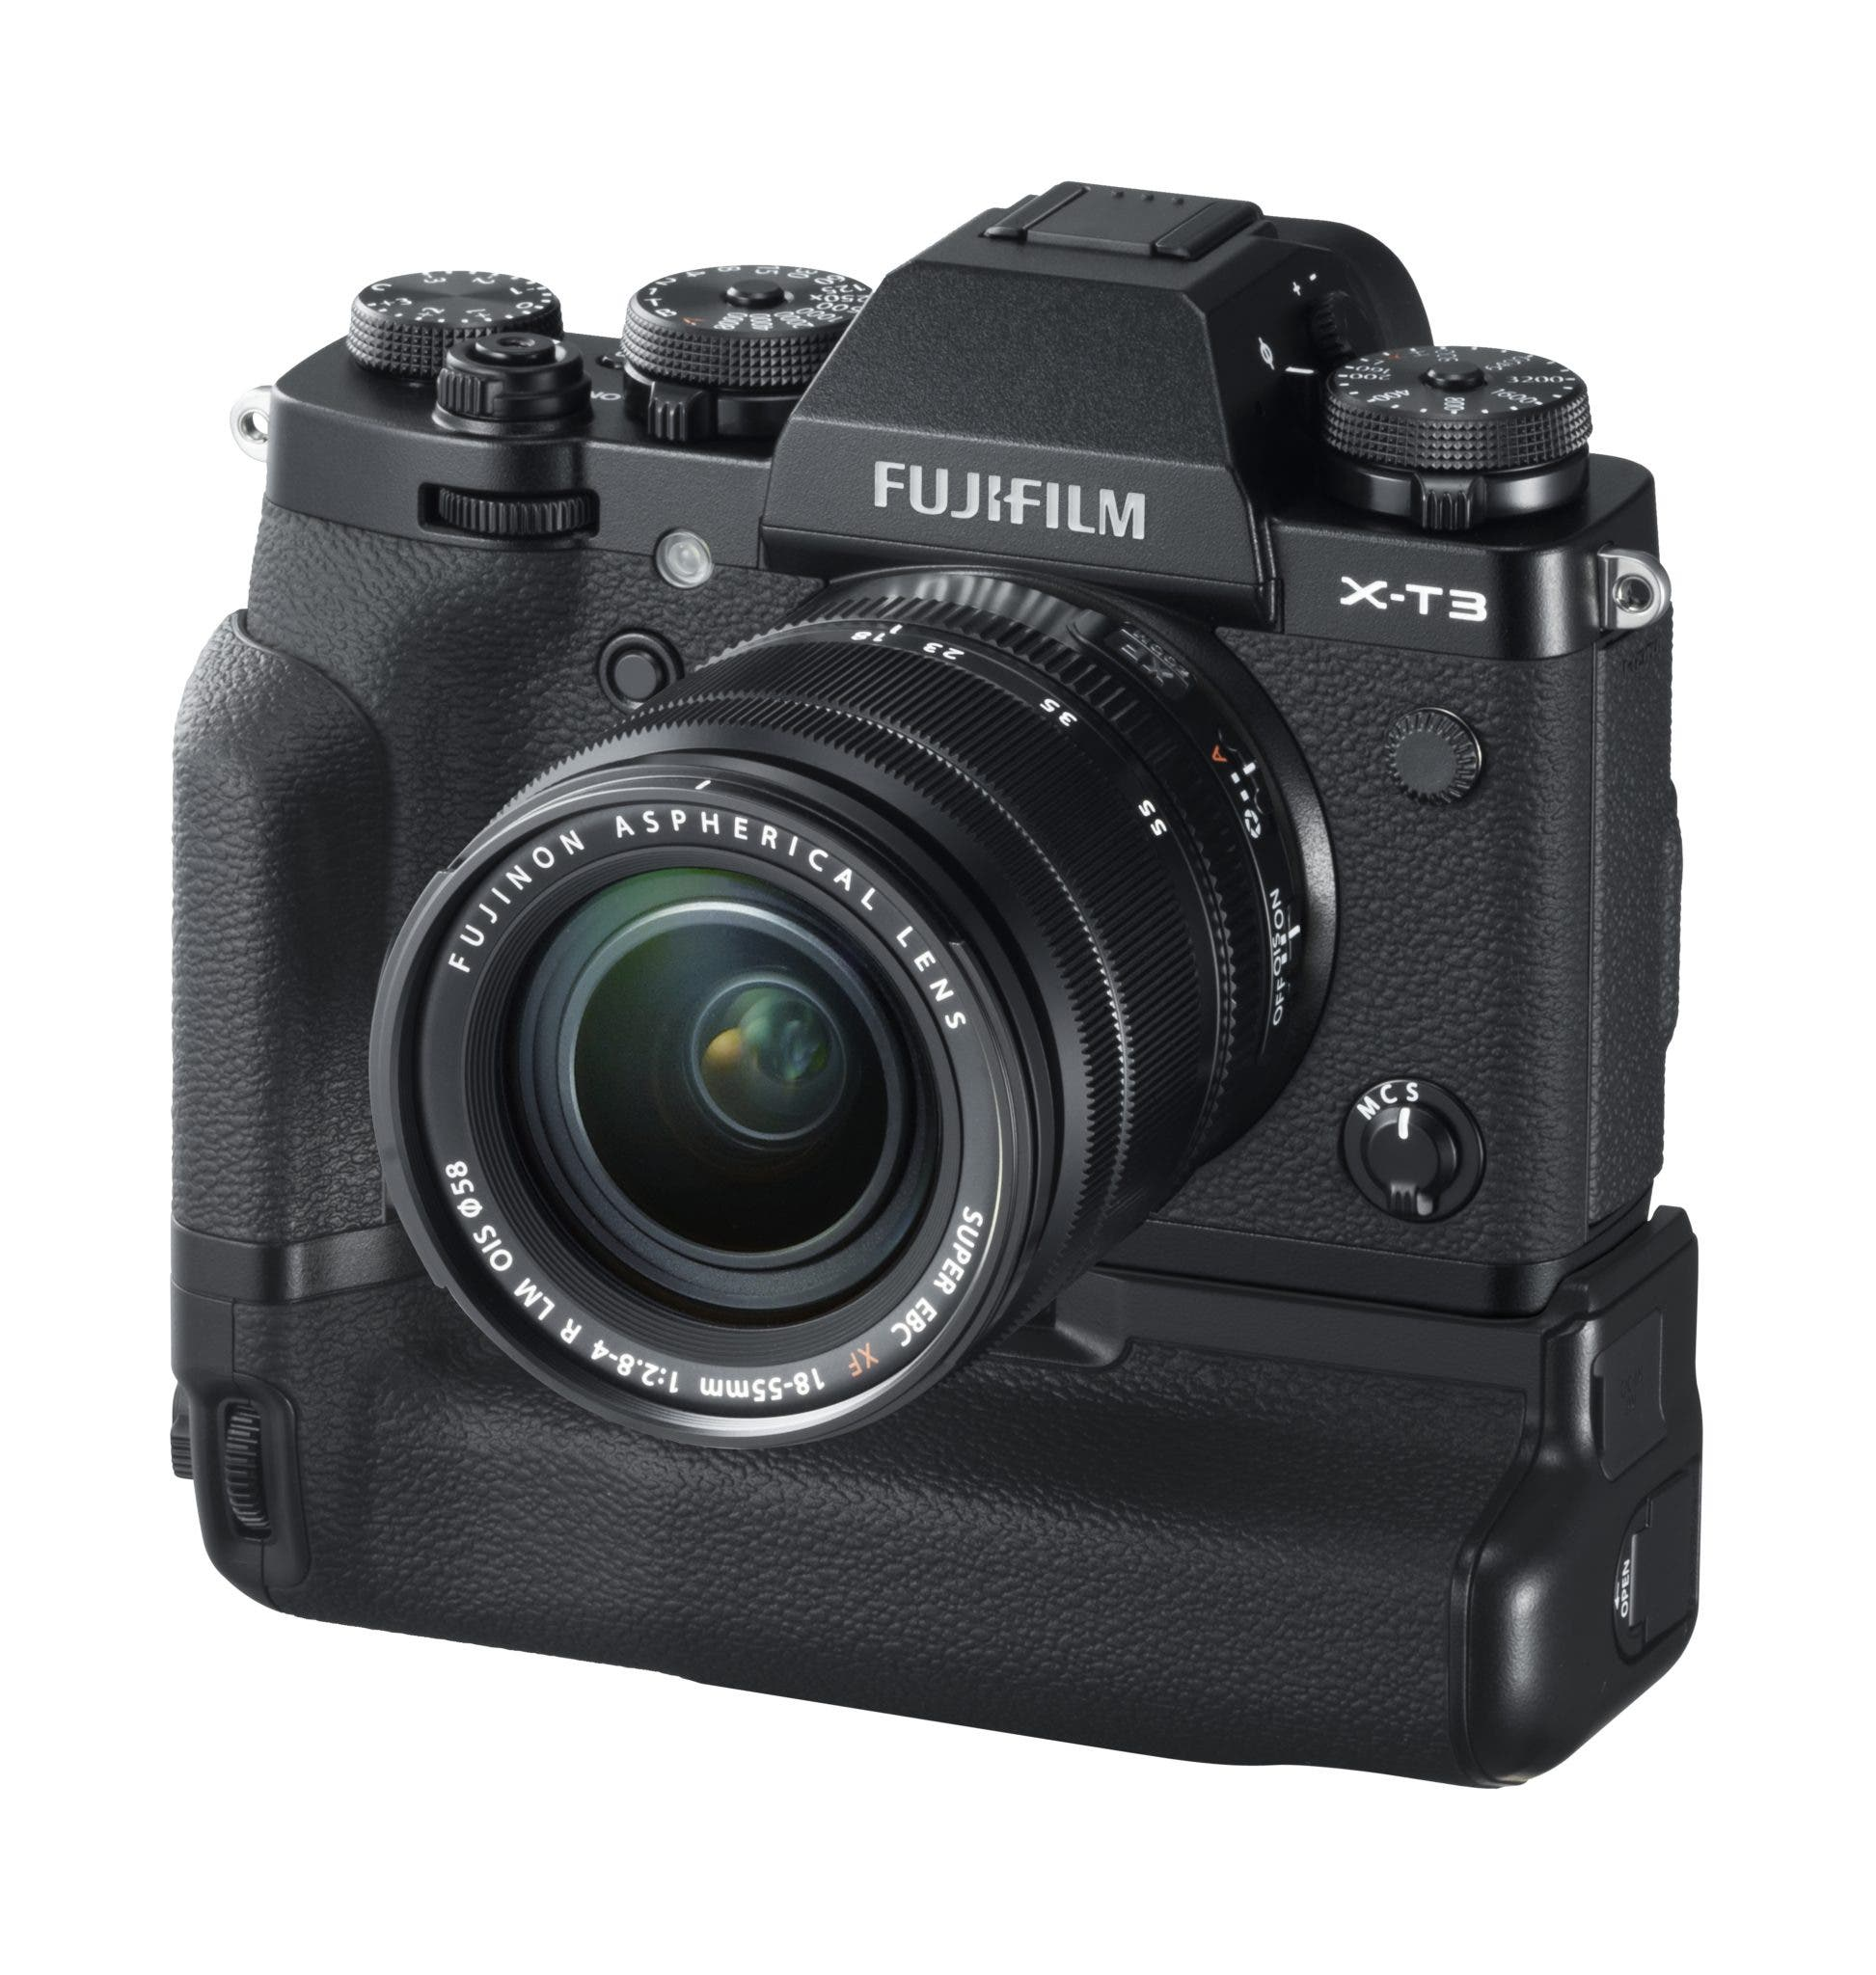 Opinion: The Fujifilm XT3's Sensor Still Doesn't Output Images That Look Totally Like Film (But They're Nice)